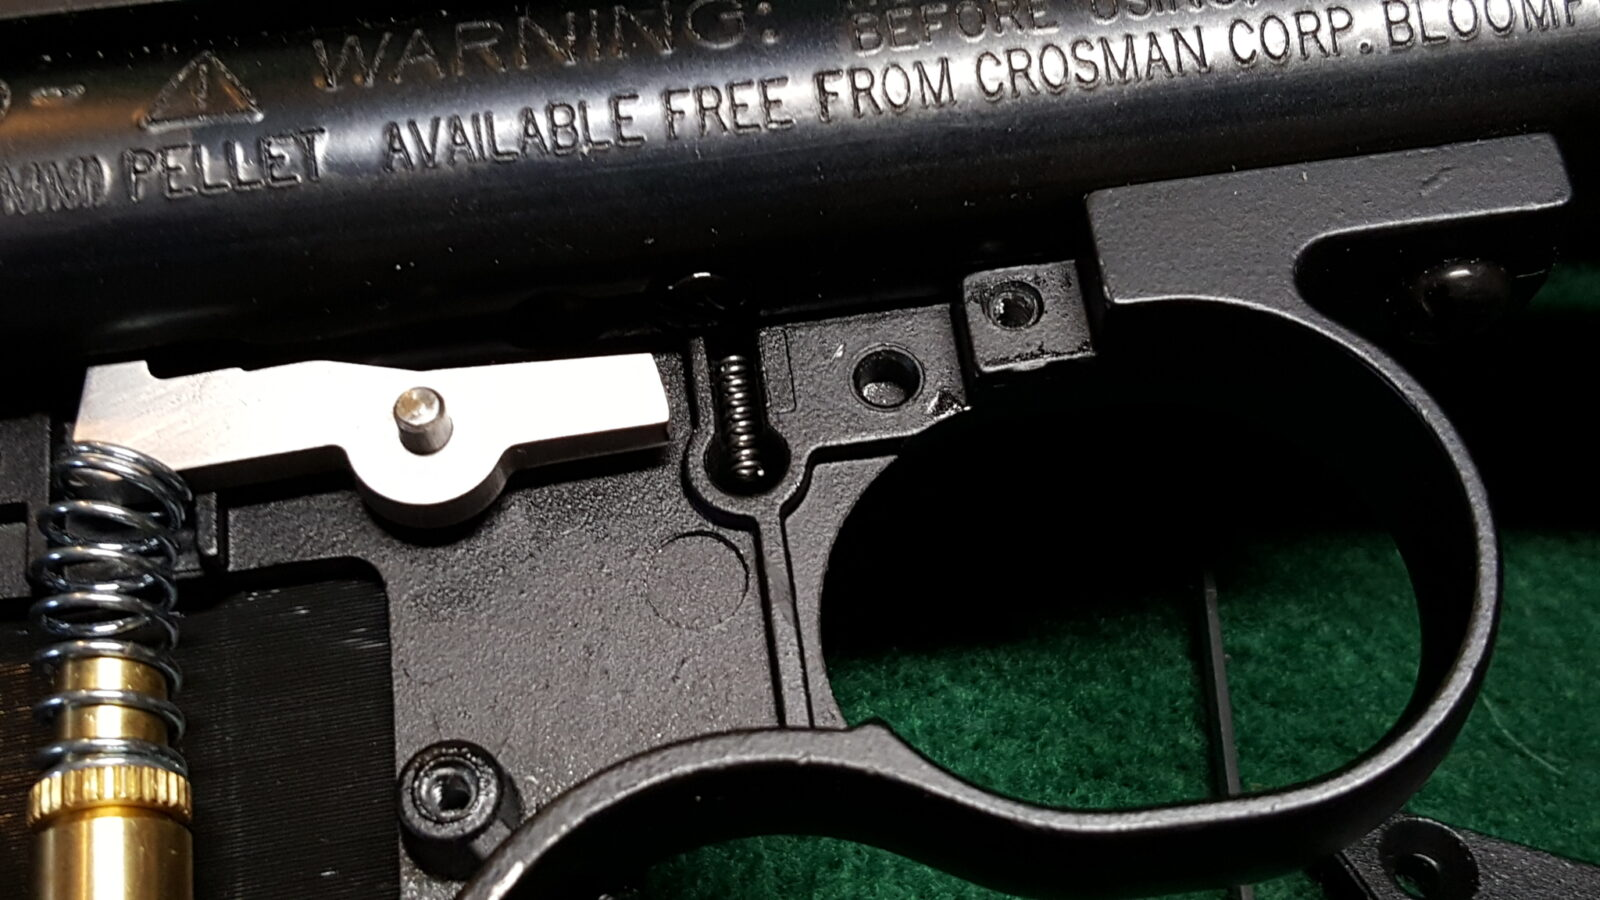 BEST PRICE New Crosman SAFETY SPRING ONLY for models 2240 1322 1377 2300 etc.